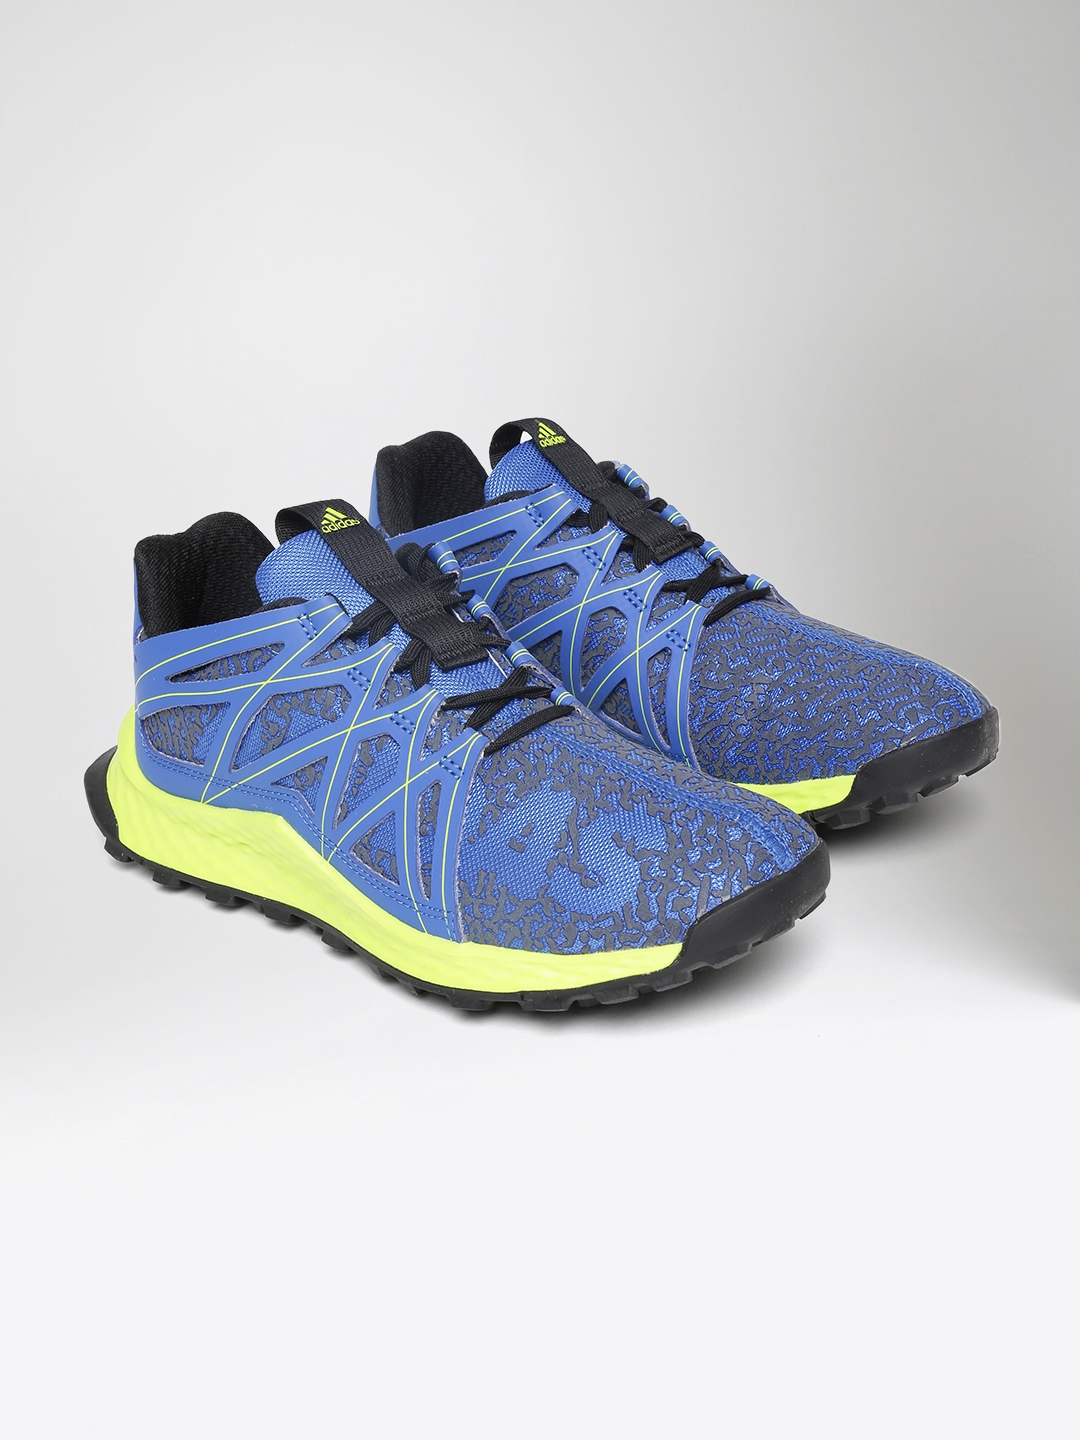 941aebfcd8f34 Buy ADIDAS Kids Blue Vigor Bounce J Running Shoes - Sports Shoes for ...